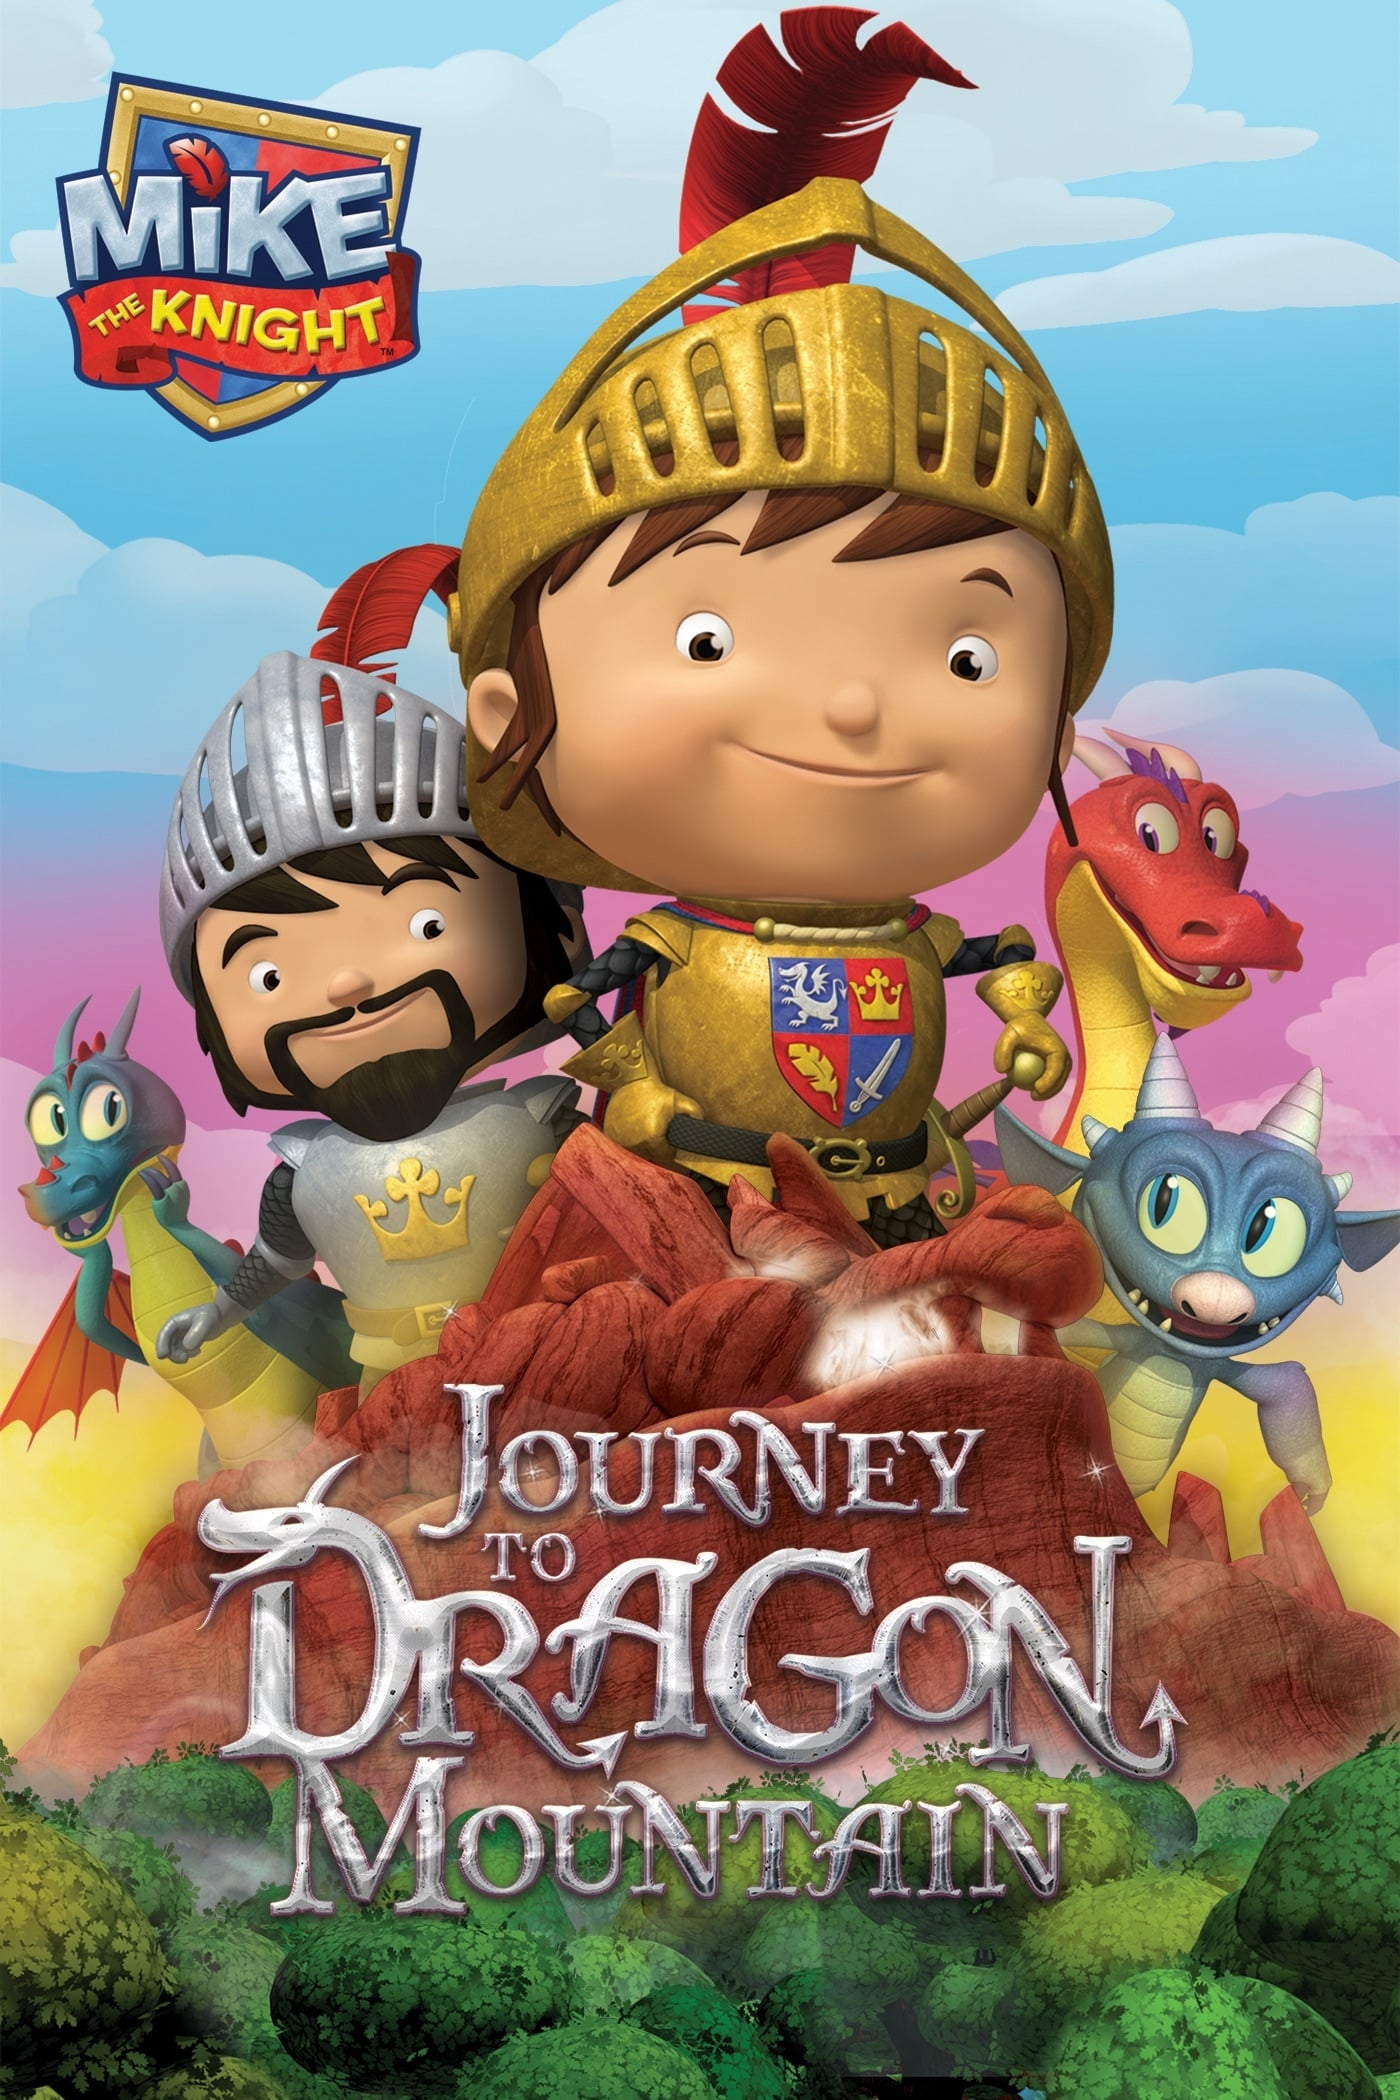 Mike The Knight: Journey To Dragon Mountain (2014)